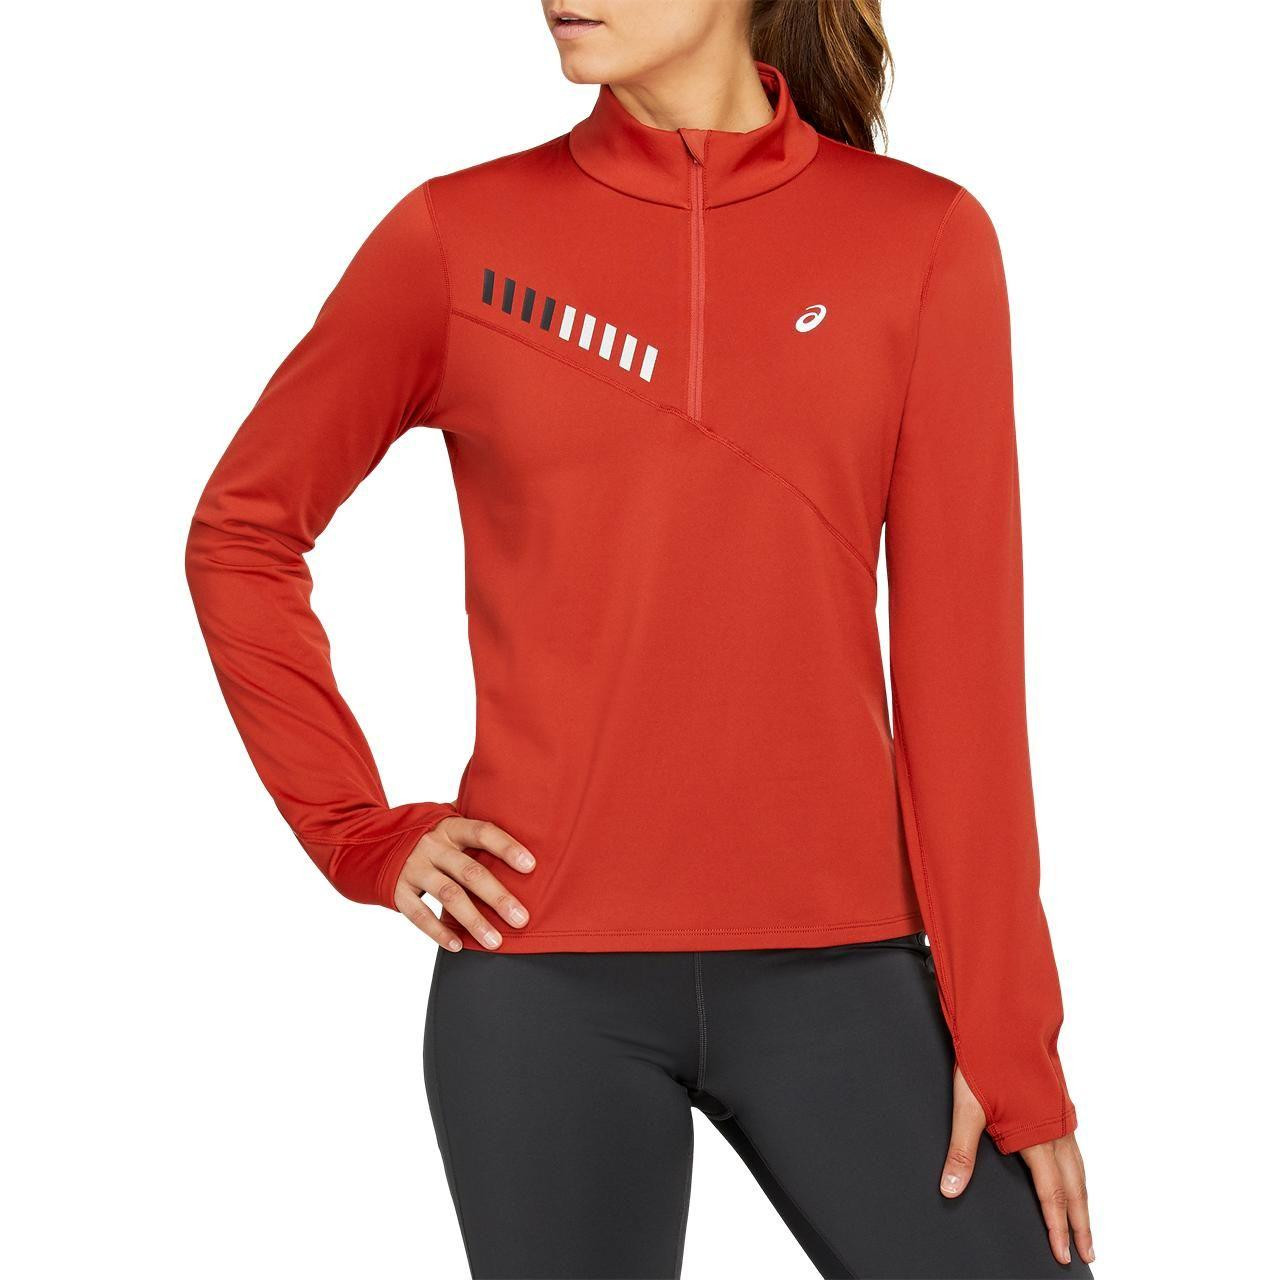 Куртка для бега Asics Lite-Show Winter 1/2 Zip Top W 2012B051-601